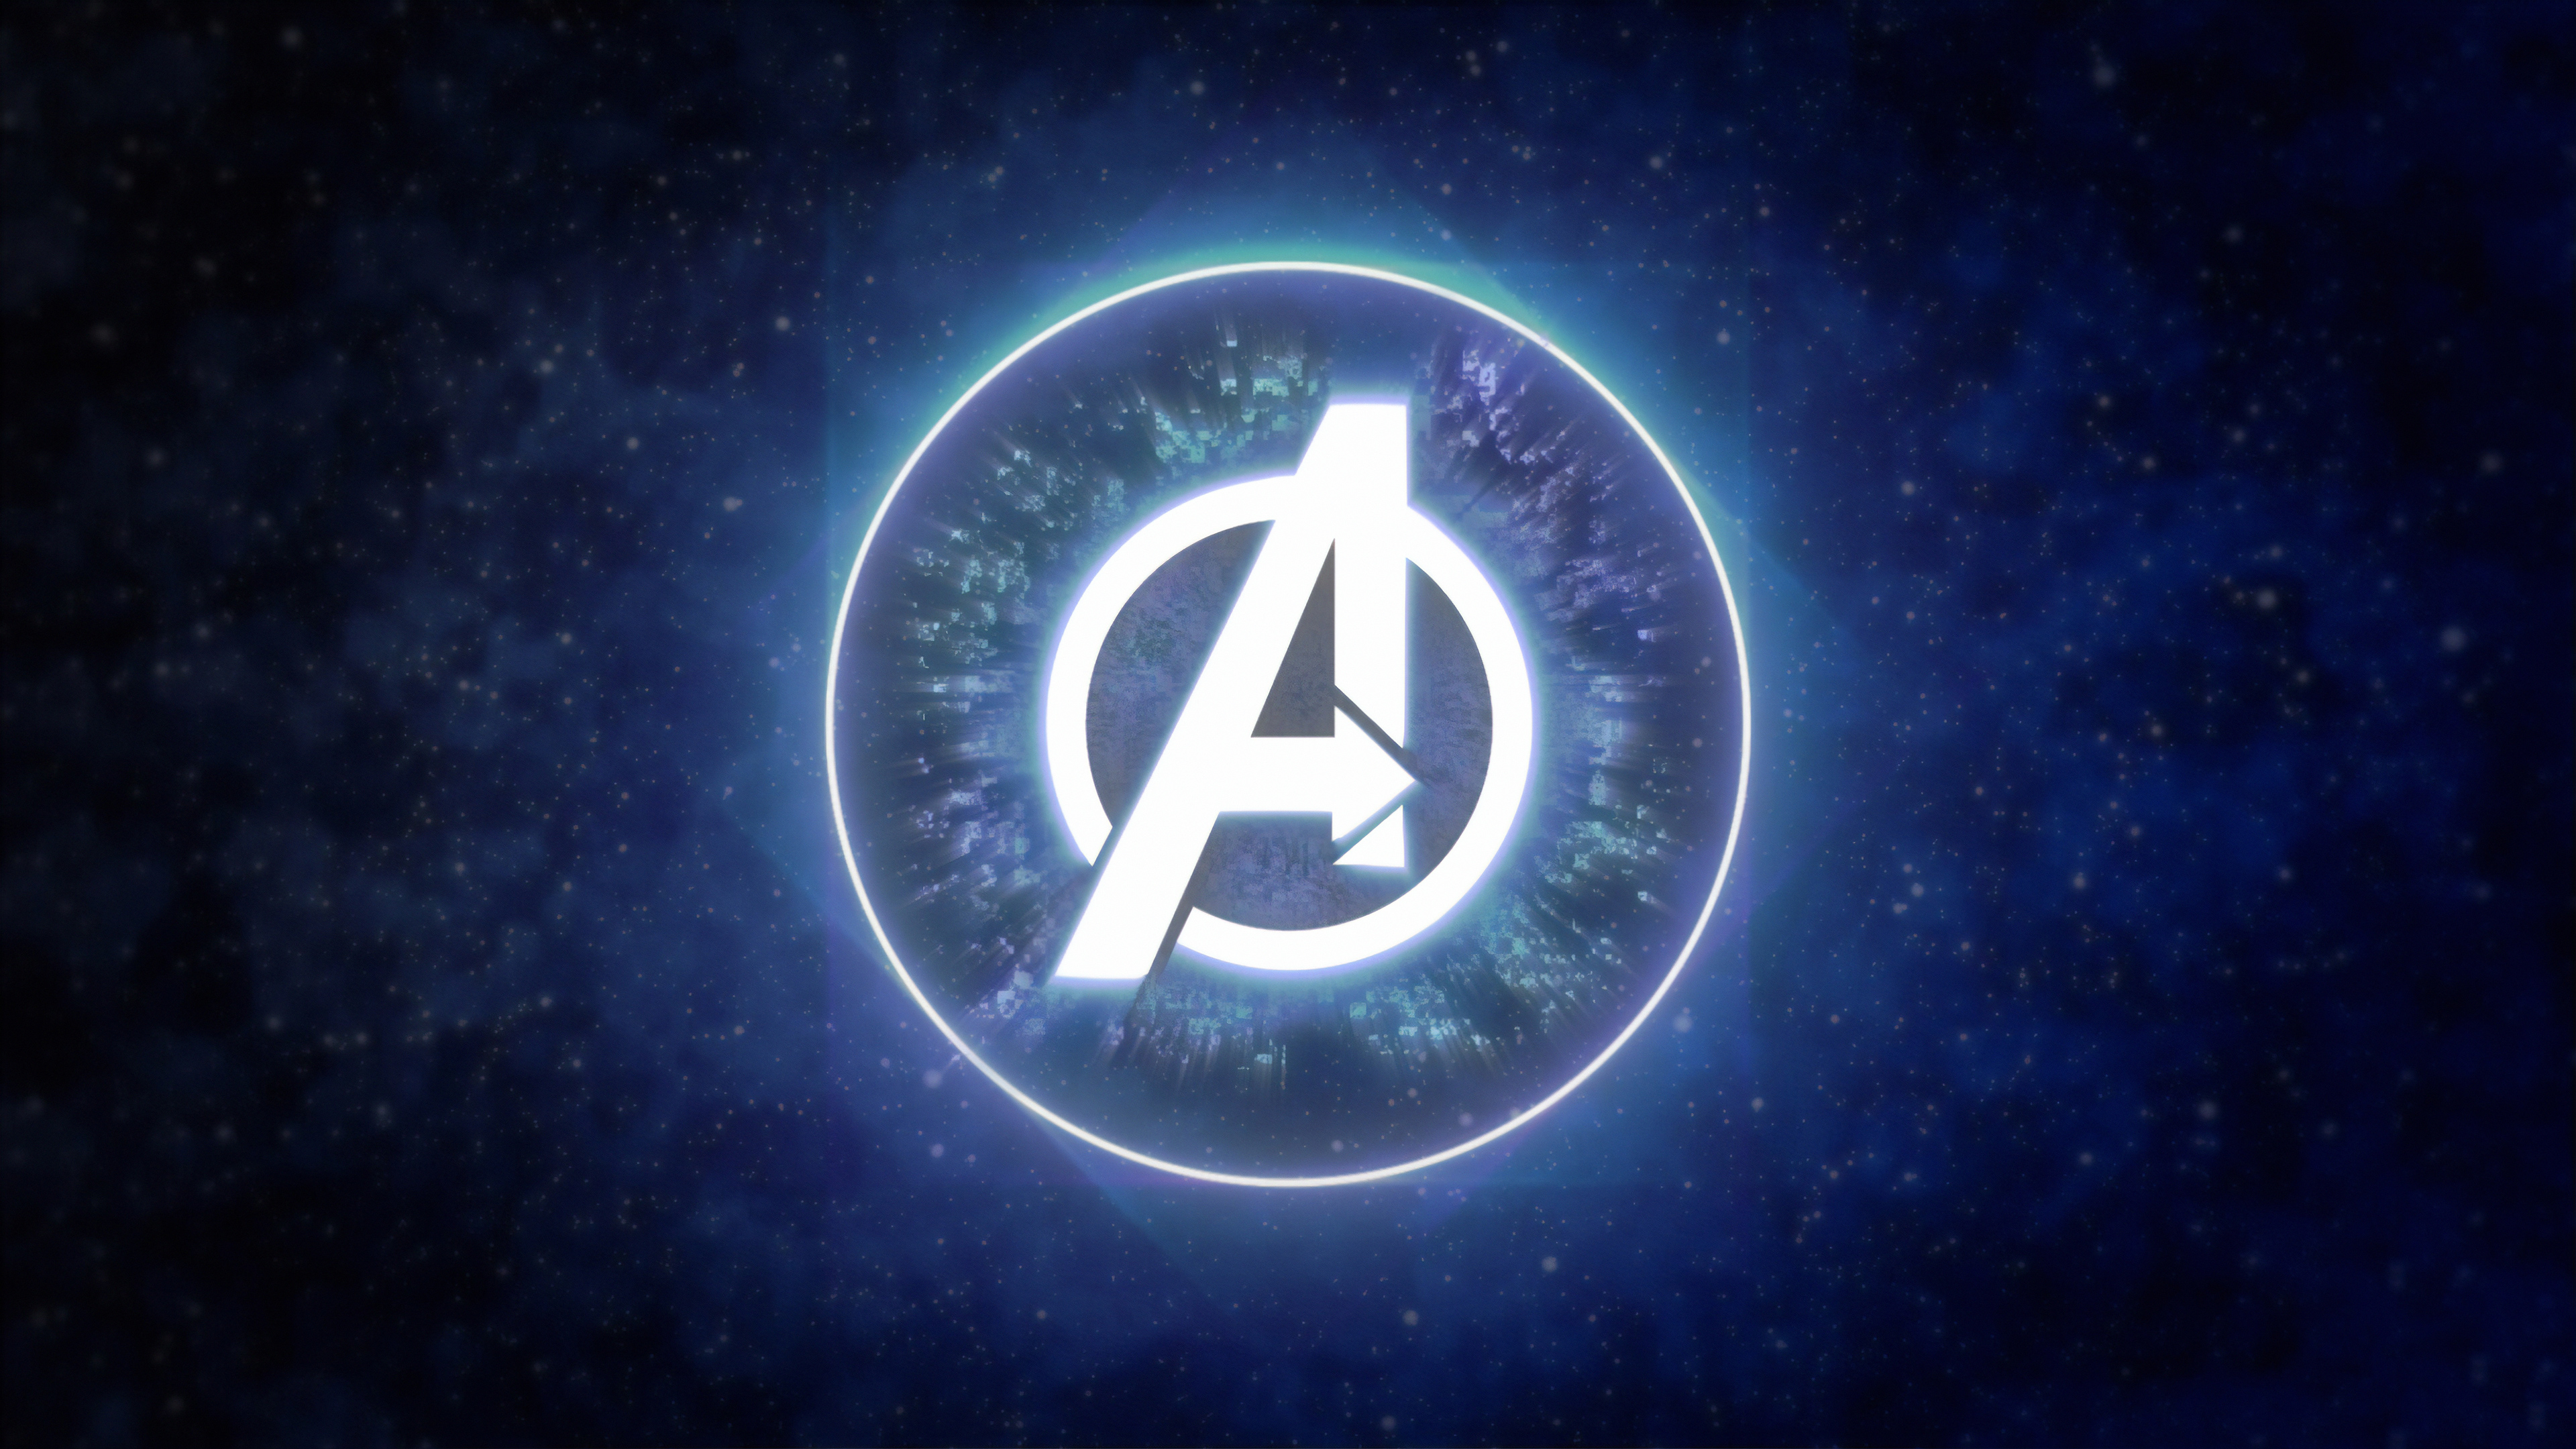 1080x1920 Avengers Logo 4k Iphone 7 6s 6 Plus Pixel Xl One Plus 3 3t 5 Hd 4k Wallpapers Images Backgrounds Photos And Pictures